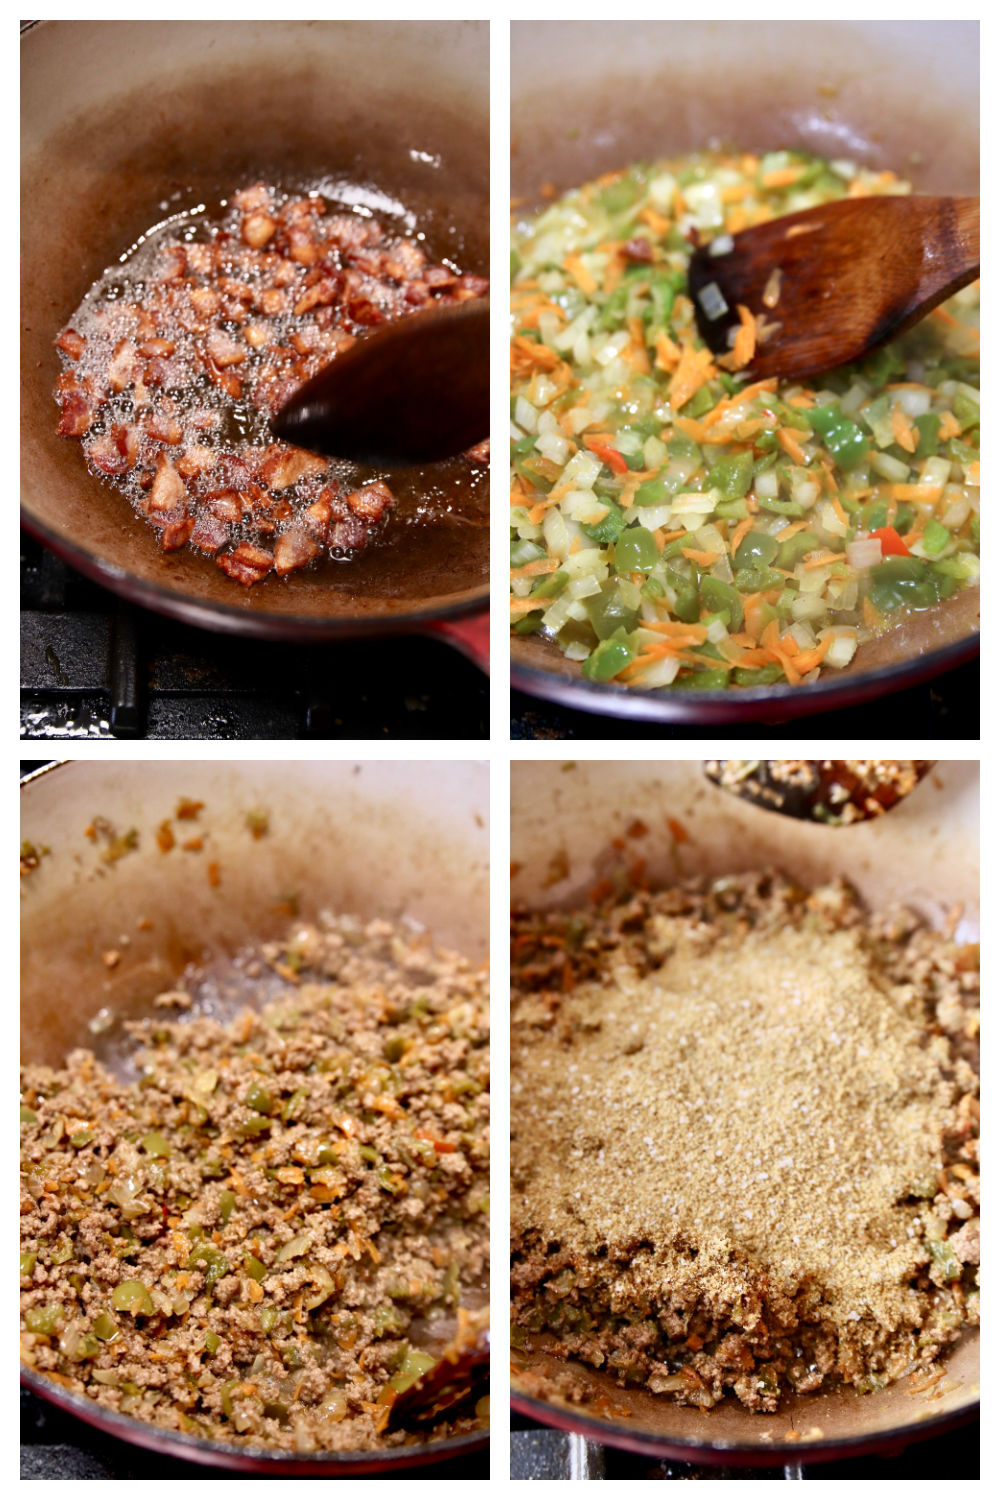 making hot dog chili with bacon, vegetables, ground beef, spices